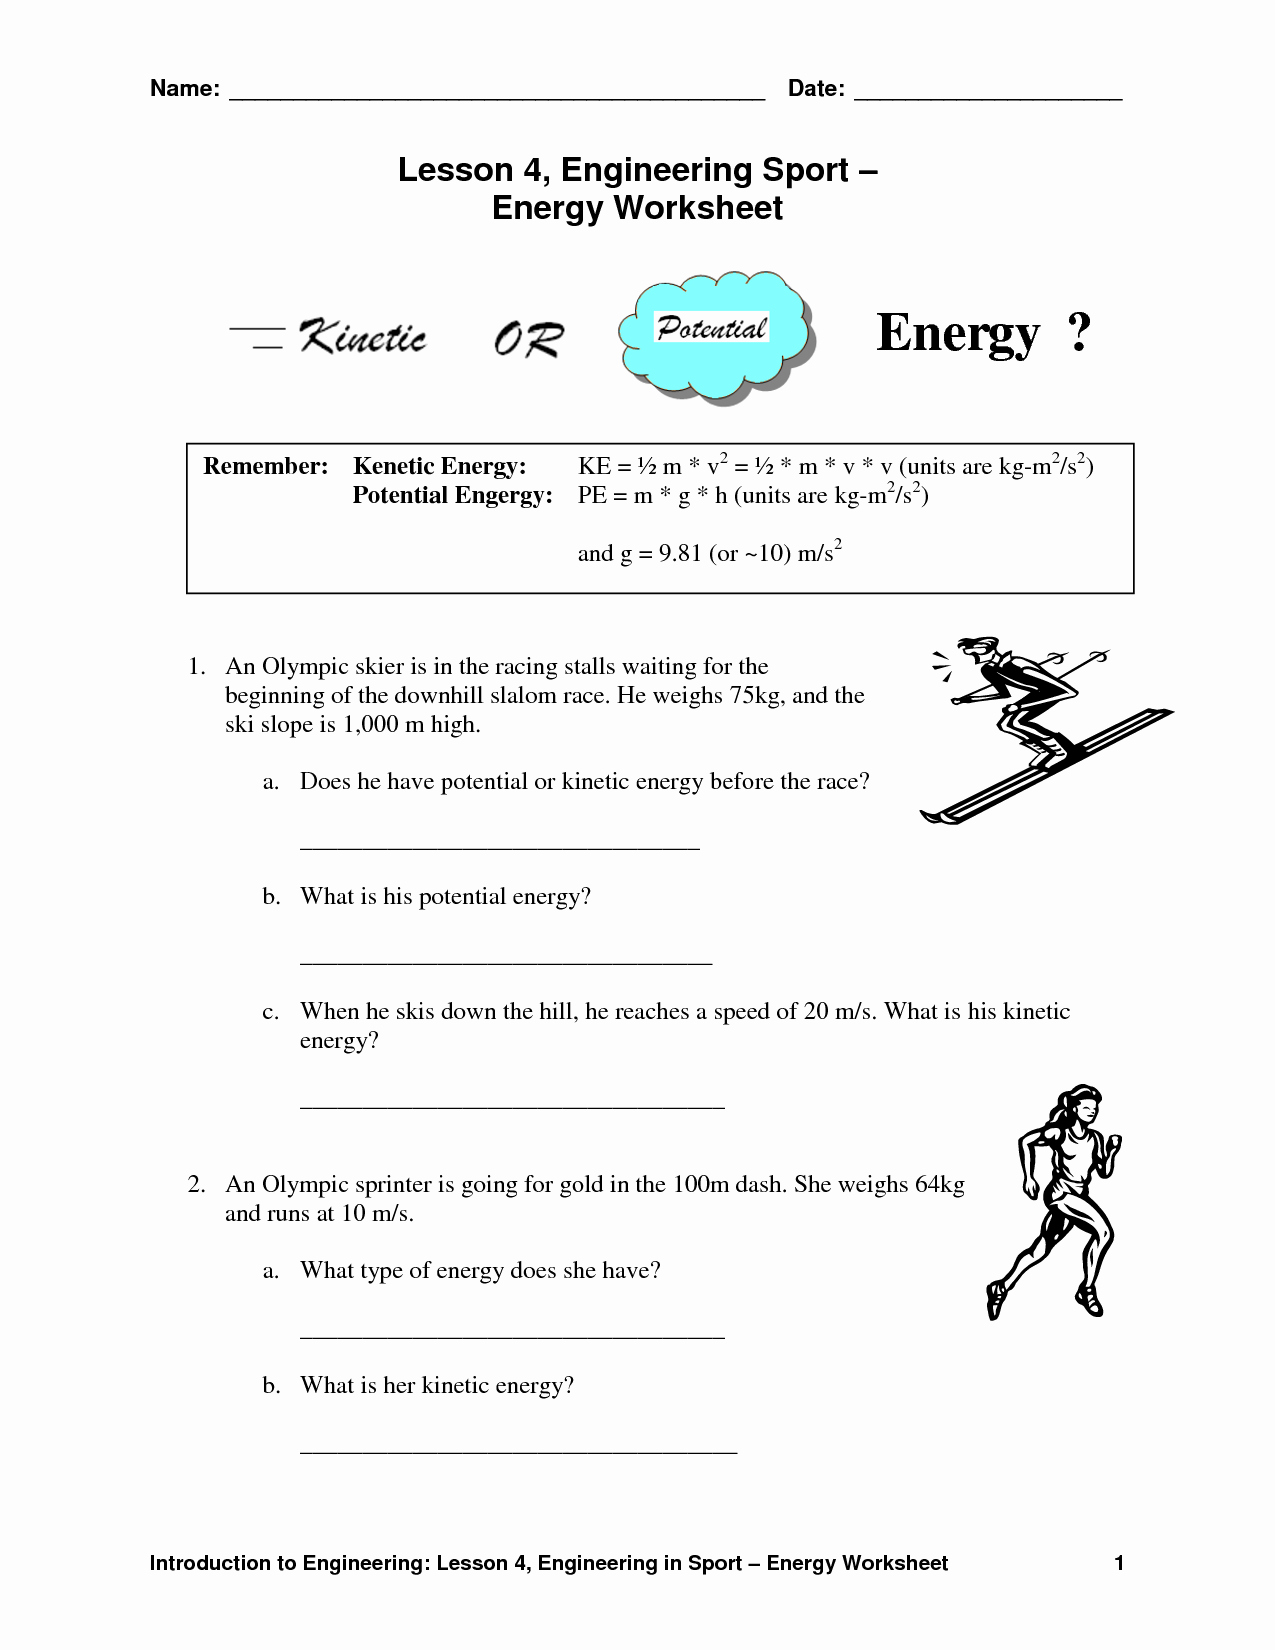 Potential and Kinetic Energy Worksheet Inspirational 12 Best Of Light Energy Worksheets Light Energy